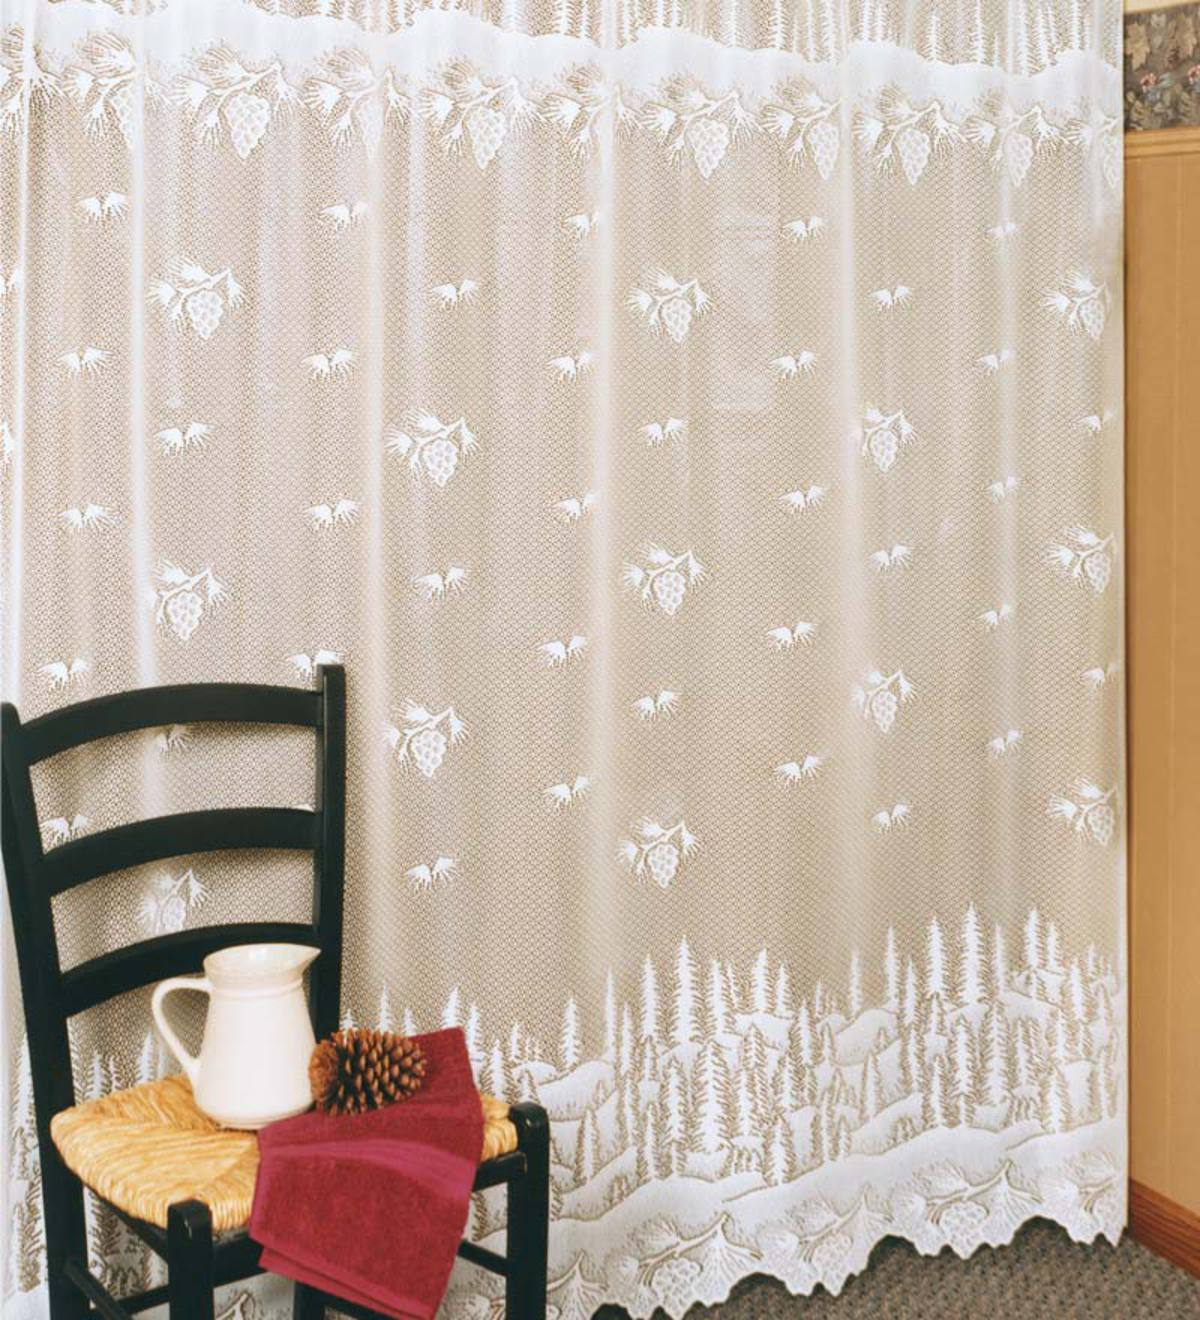 USA Made Pinecone Lace Shower Curtain